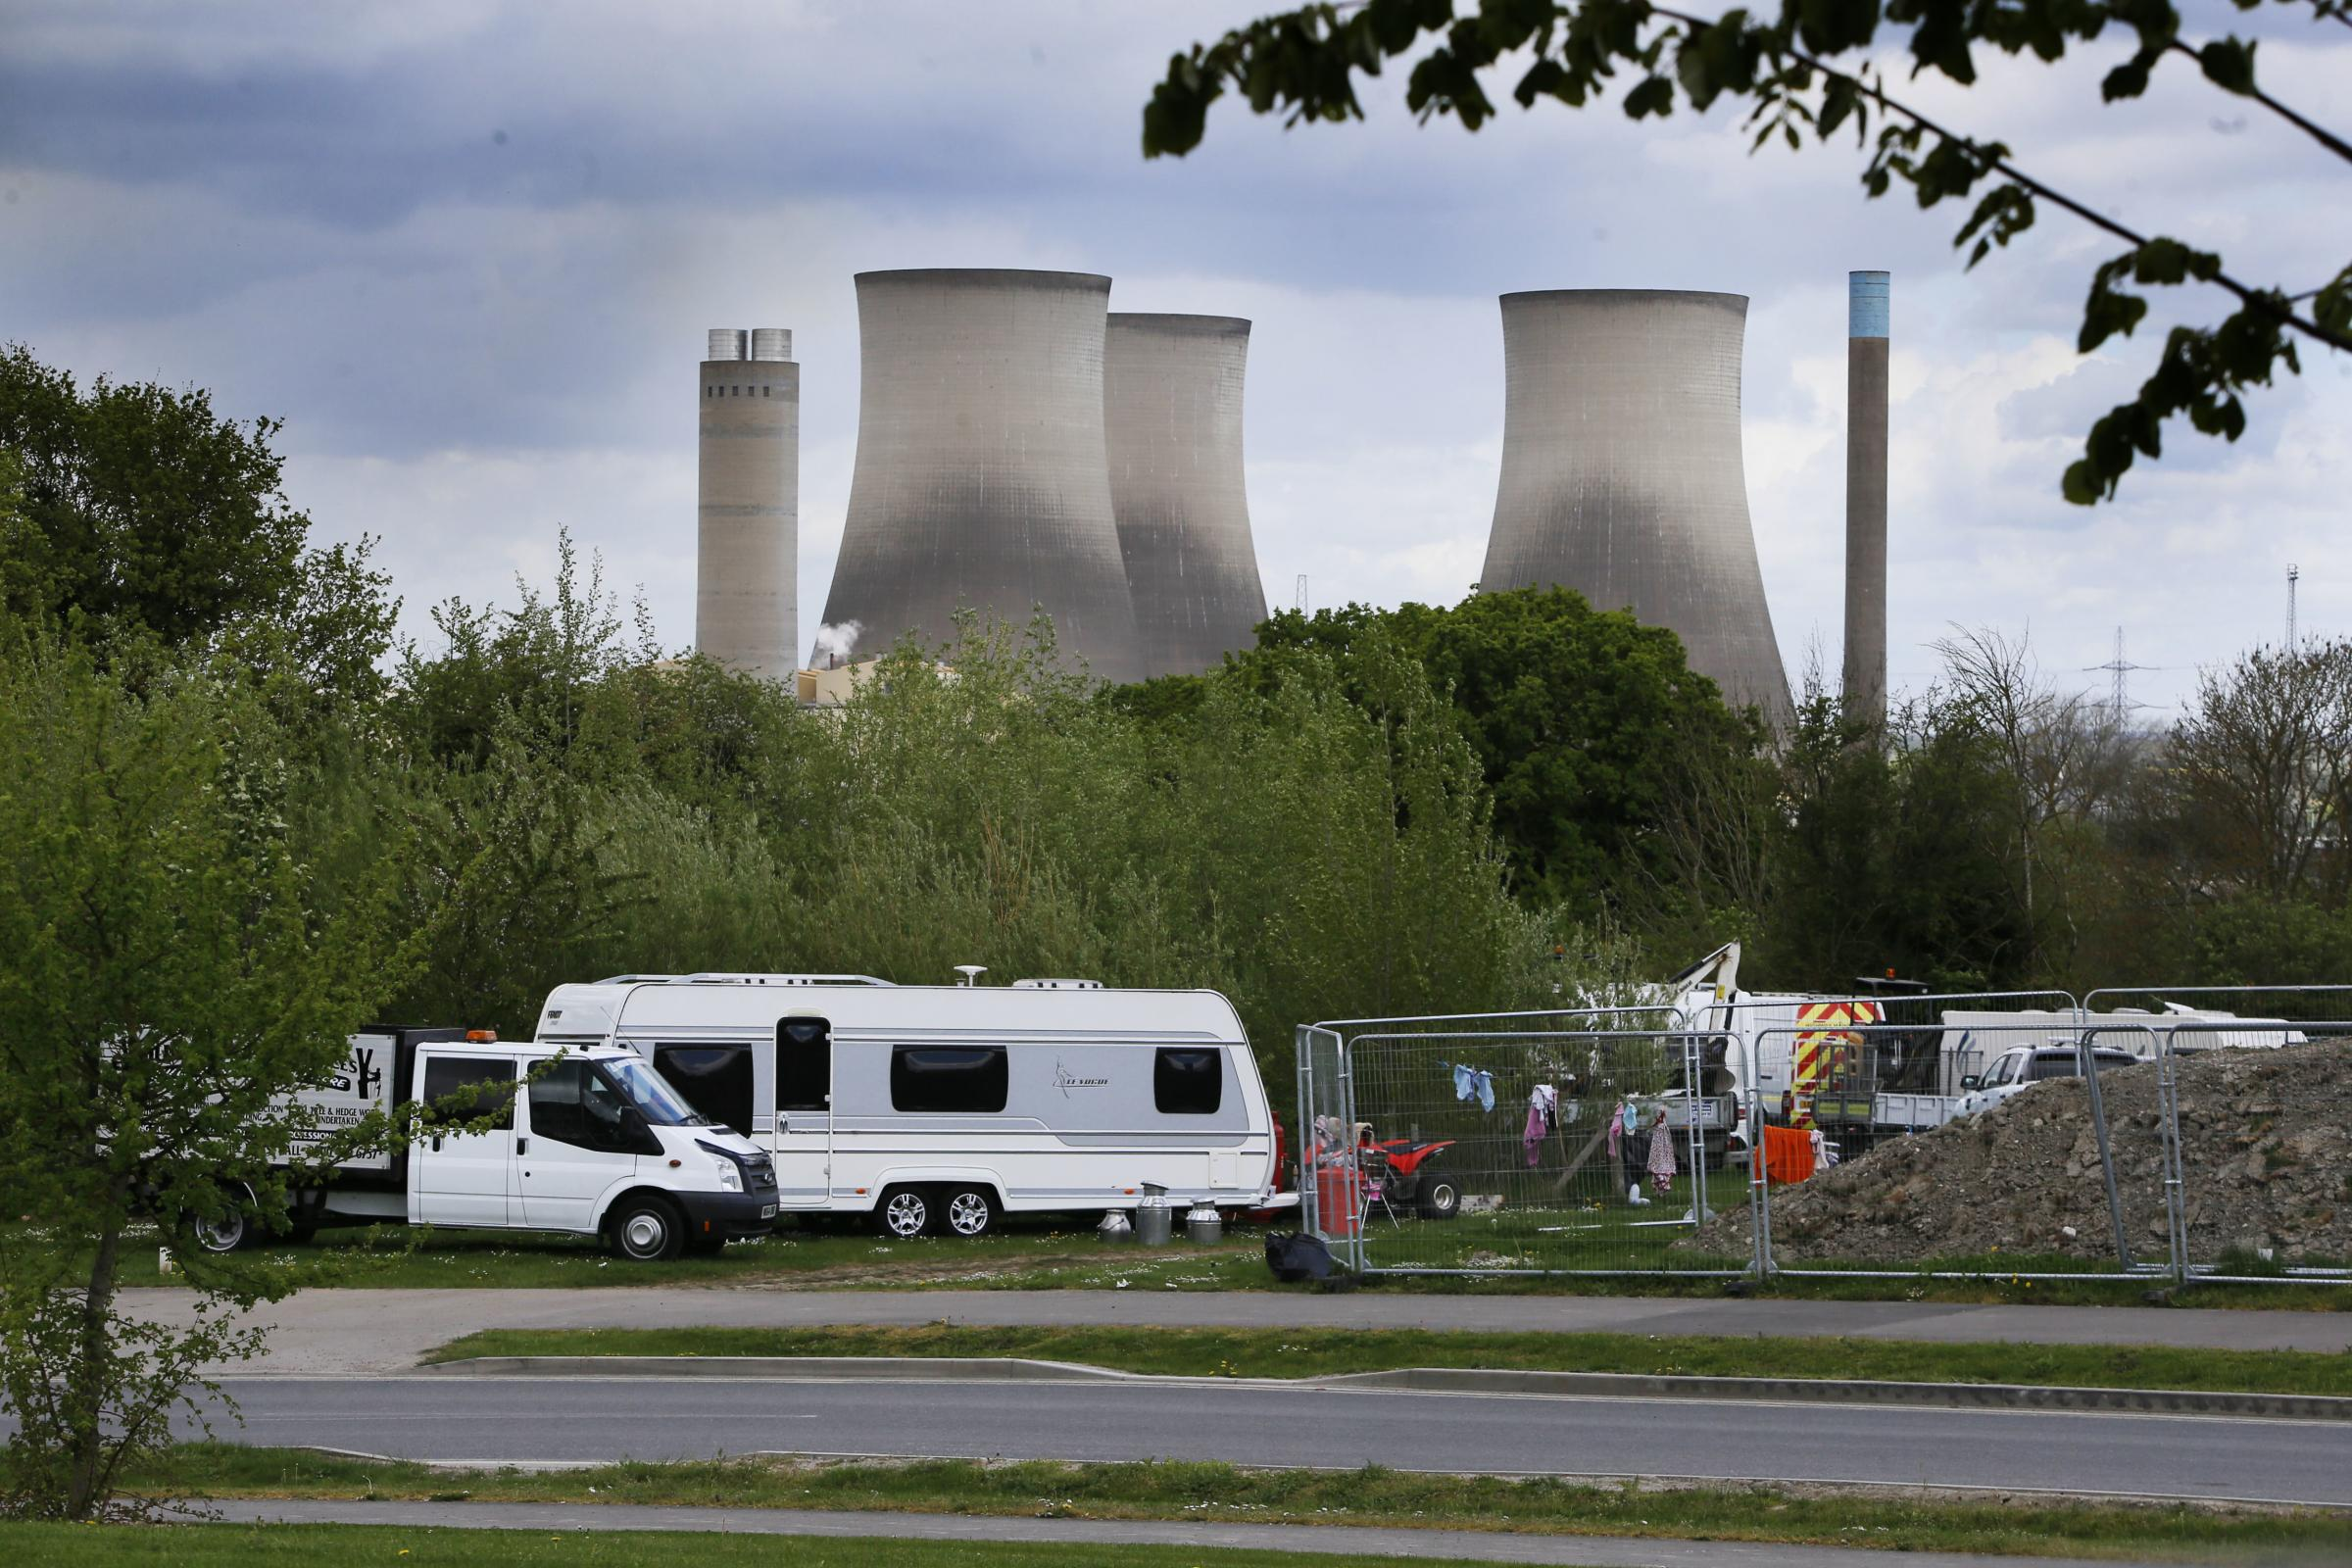 Travellers pictured in Didcot at the Great Western Estate..25/04/2019.NO BYLINE PLEASE.